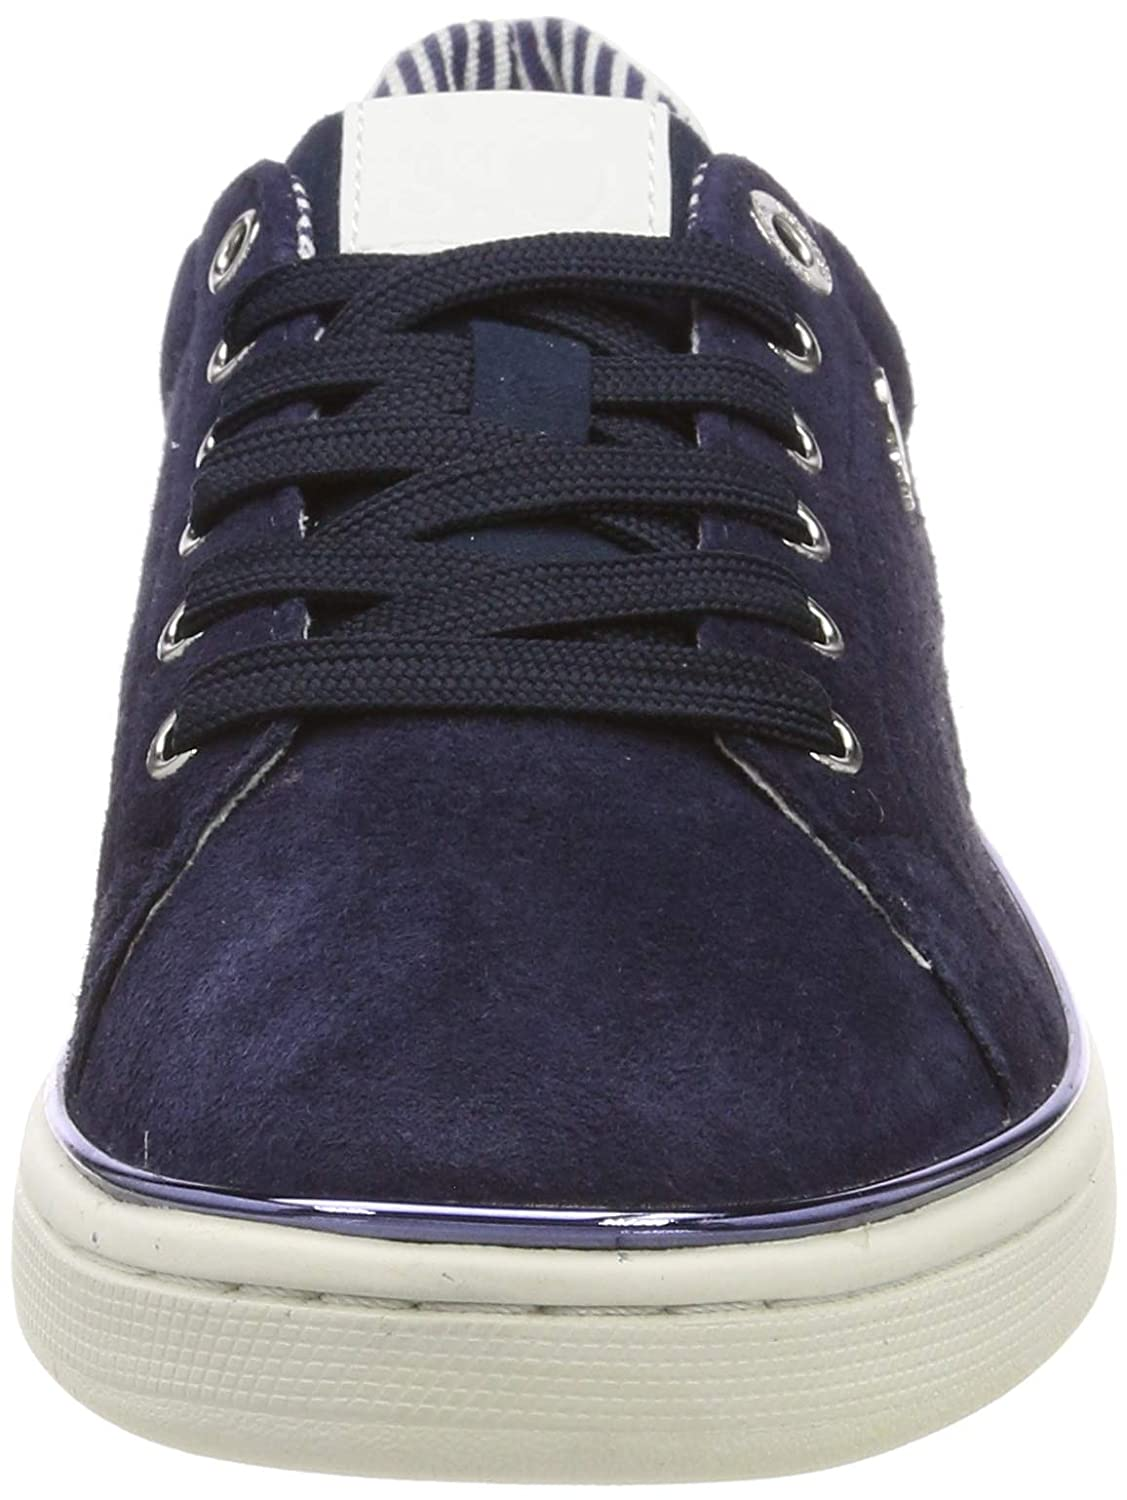 s.Oliver Womens 5-5-23625-22 805 Low-Top Sneakers